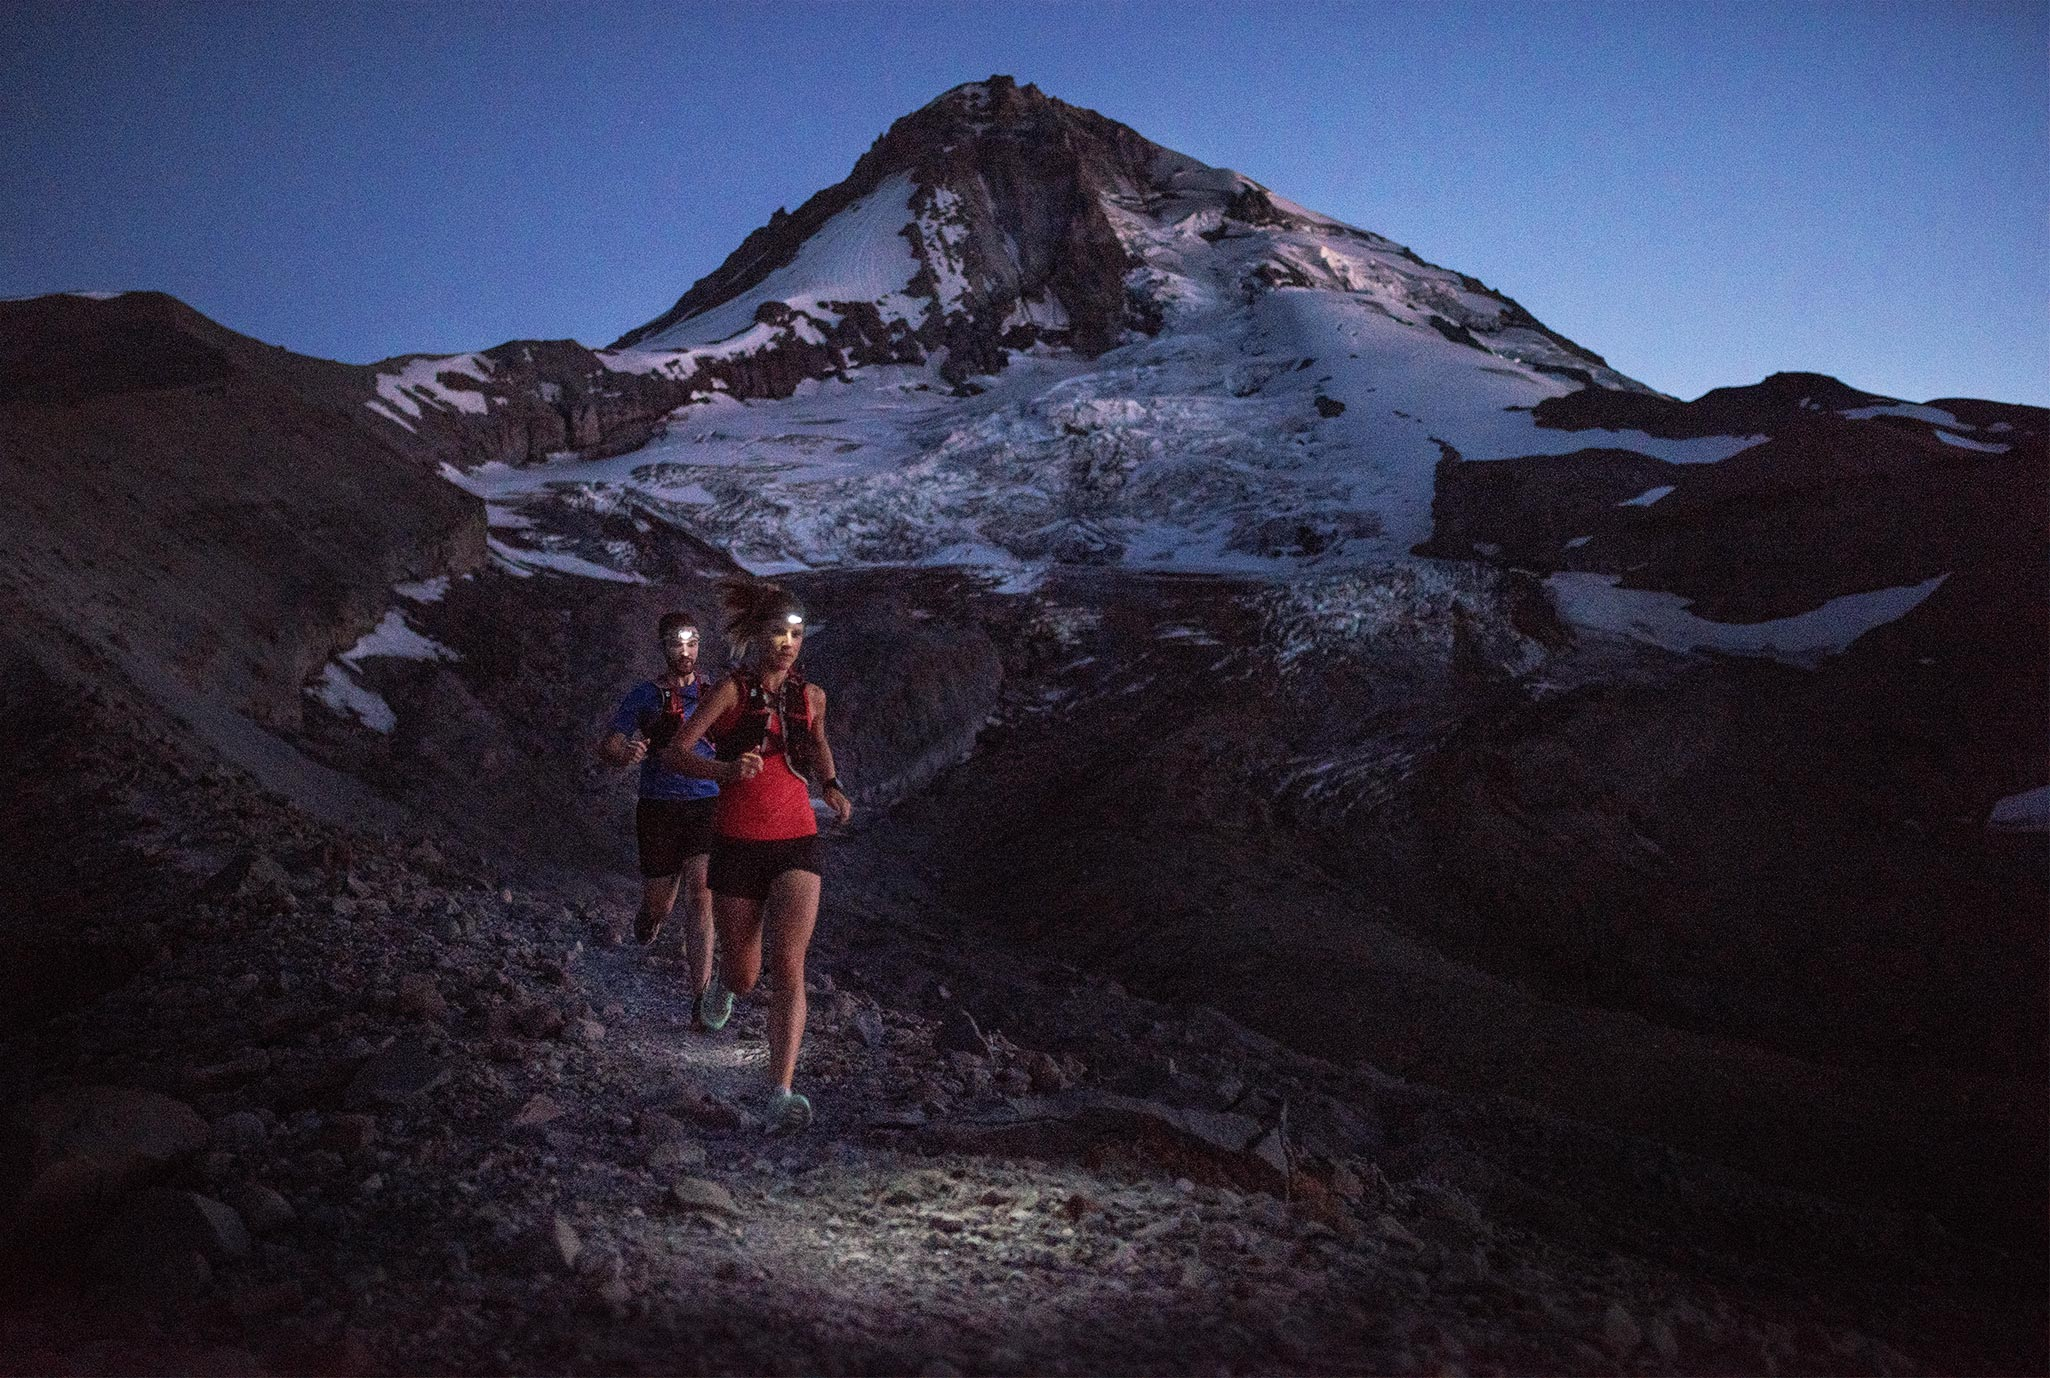 Trail runners at night with Mt. Hood in background.